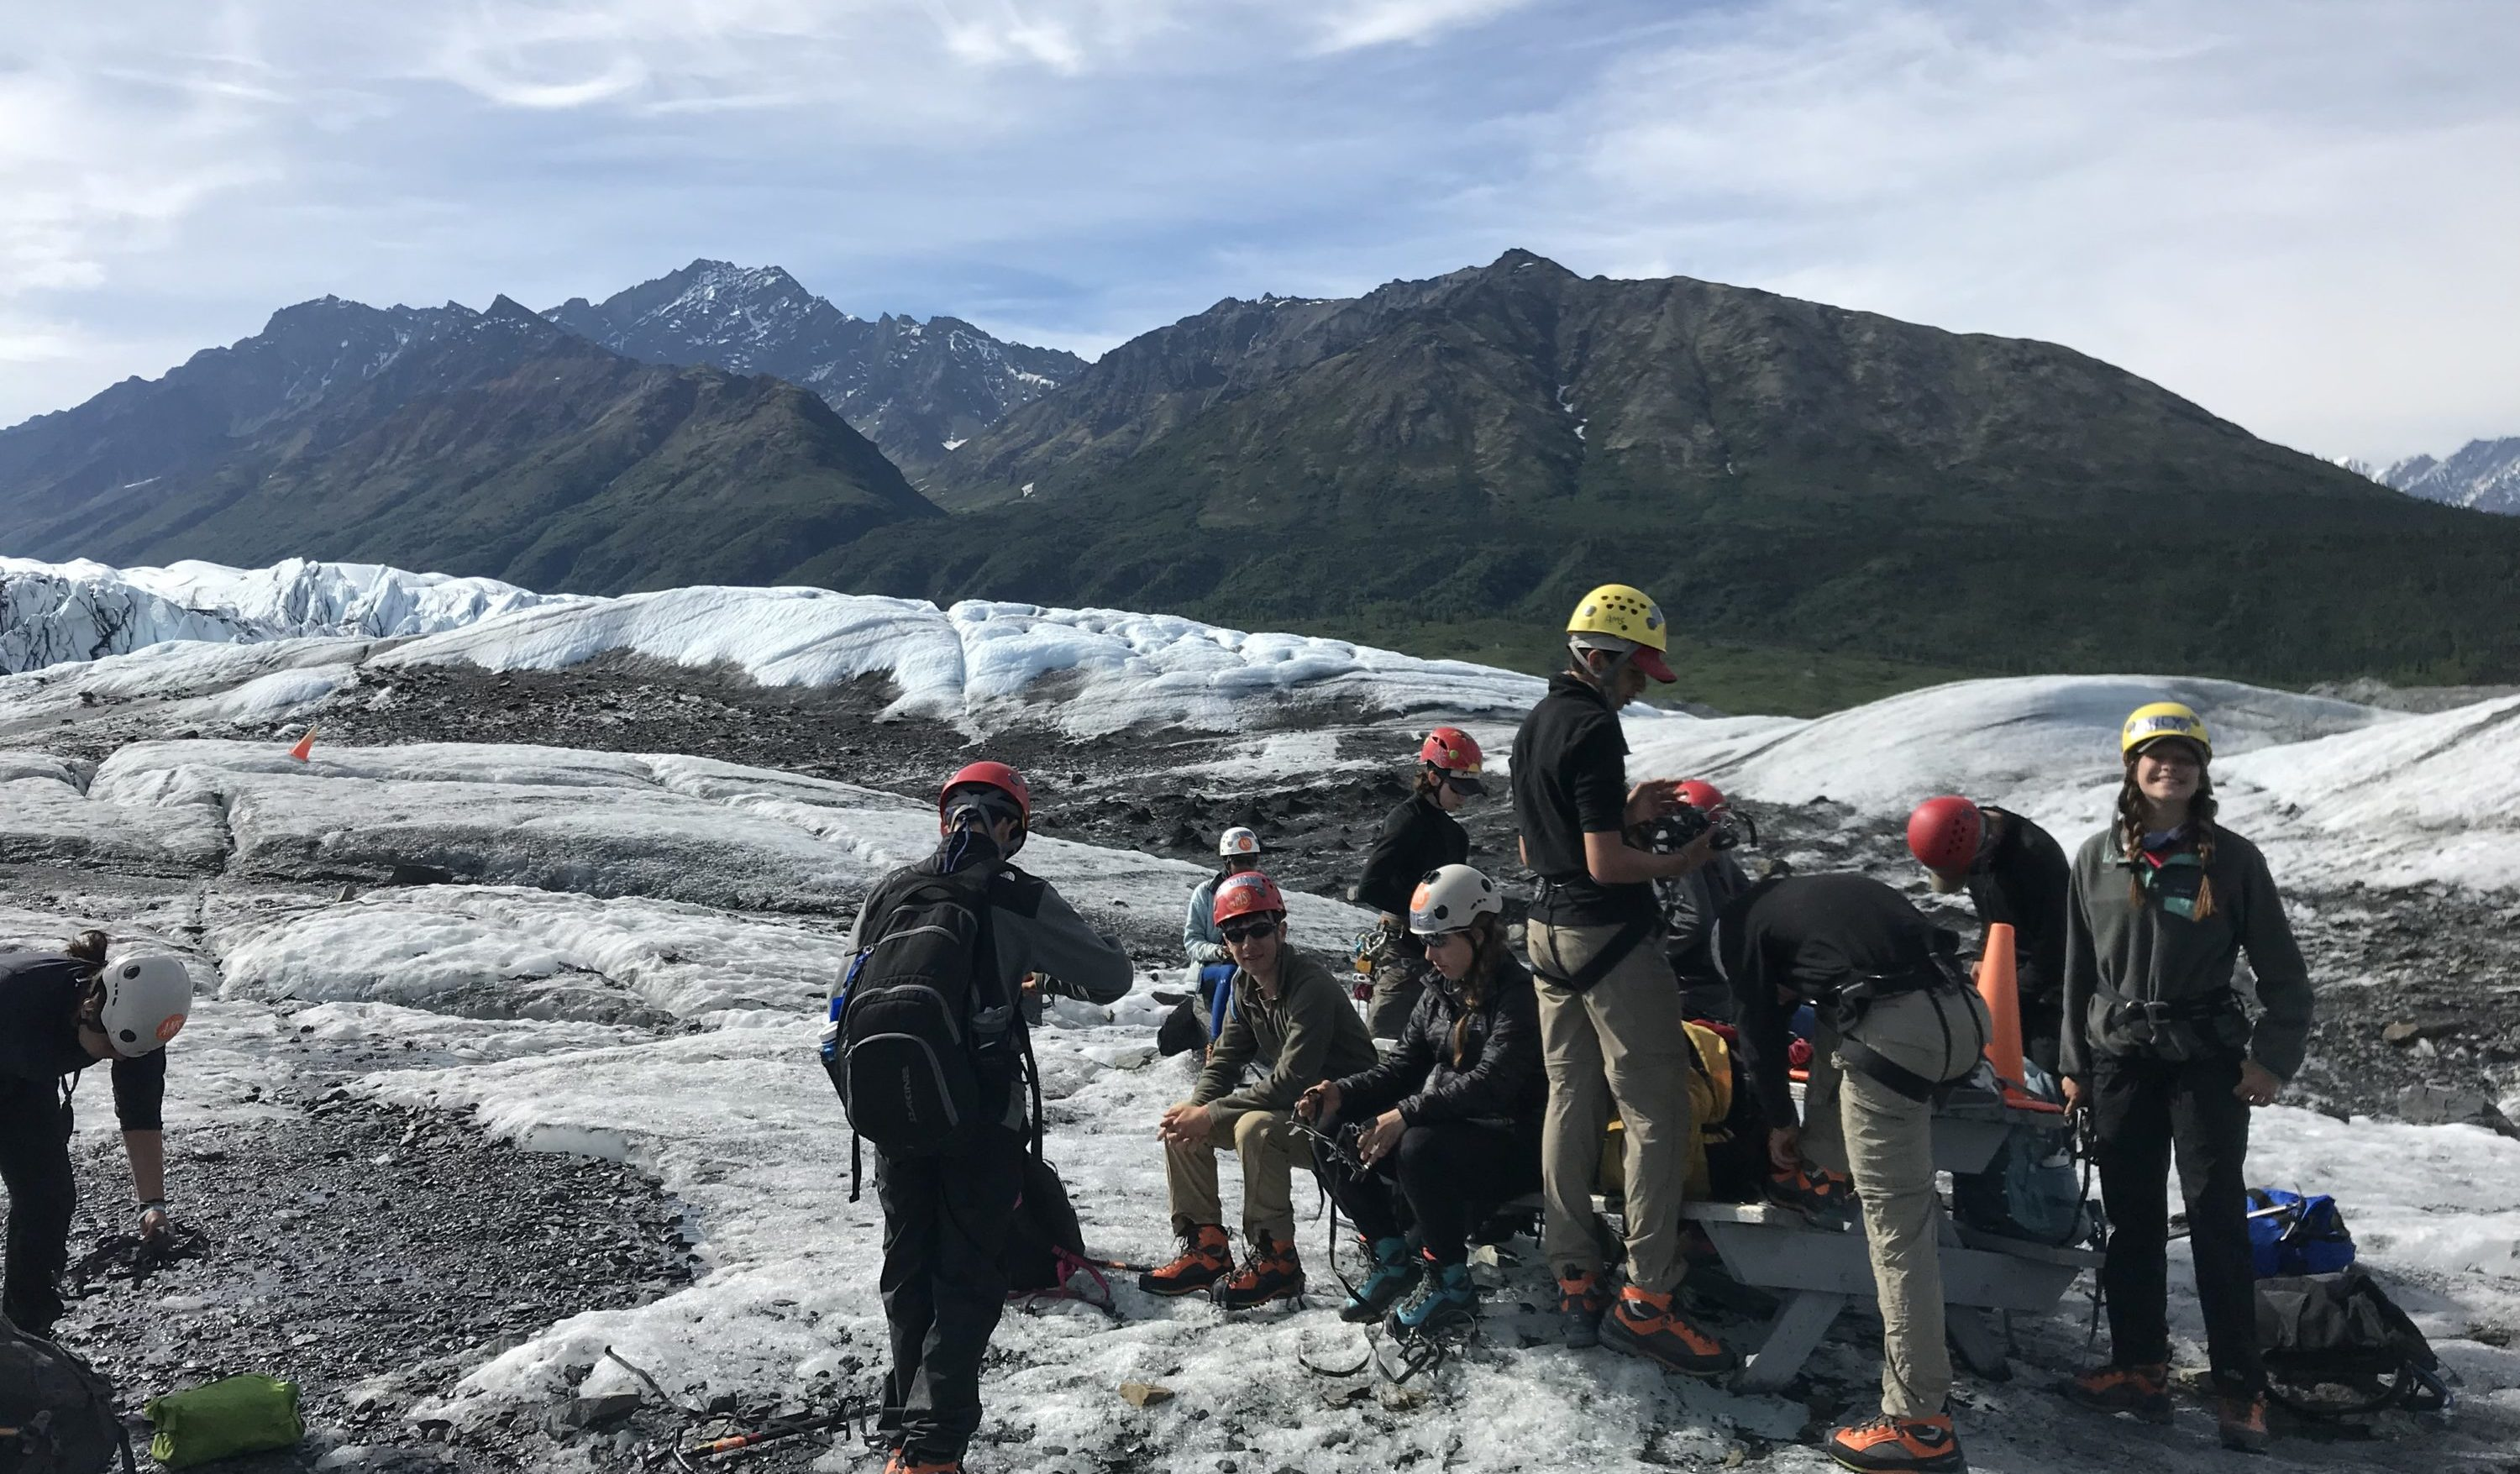 An Overland group ice climbs in Alaska